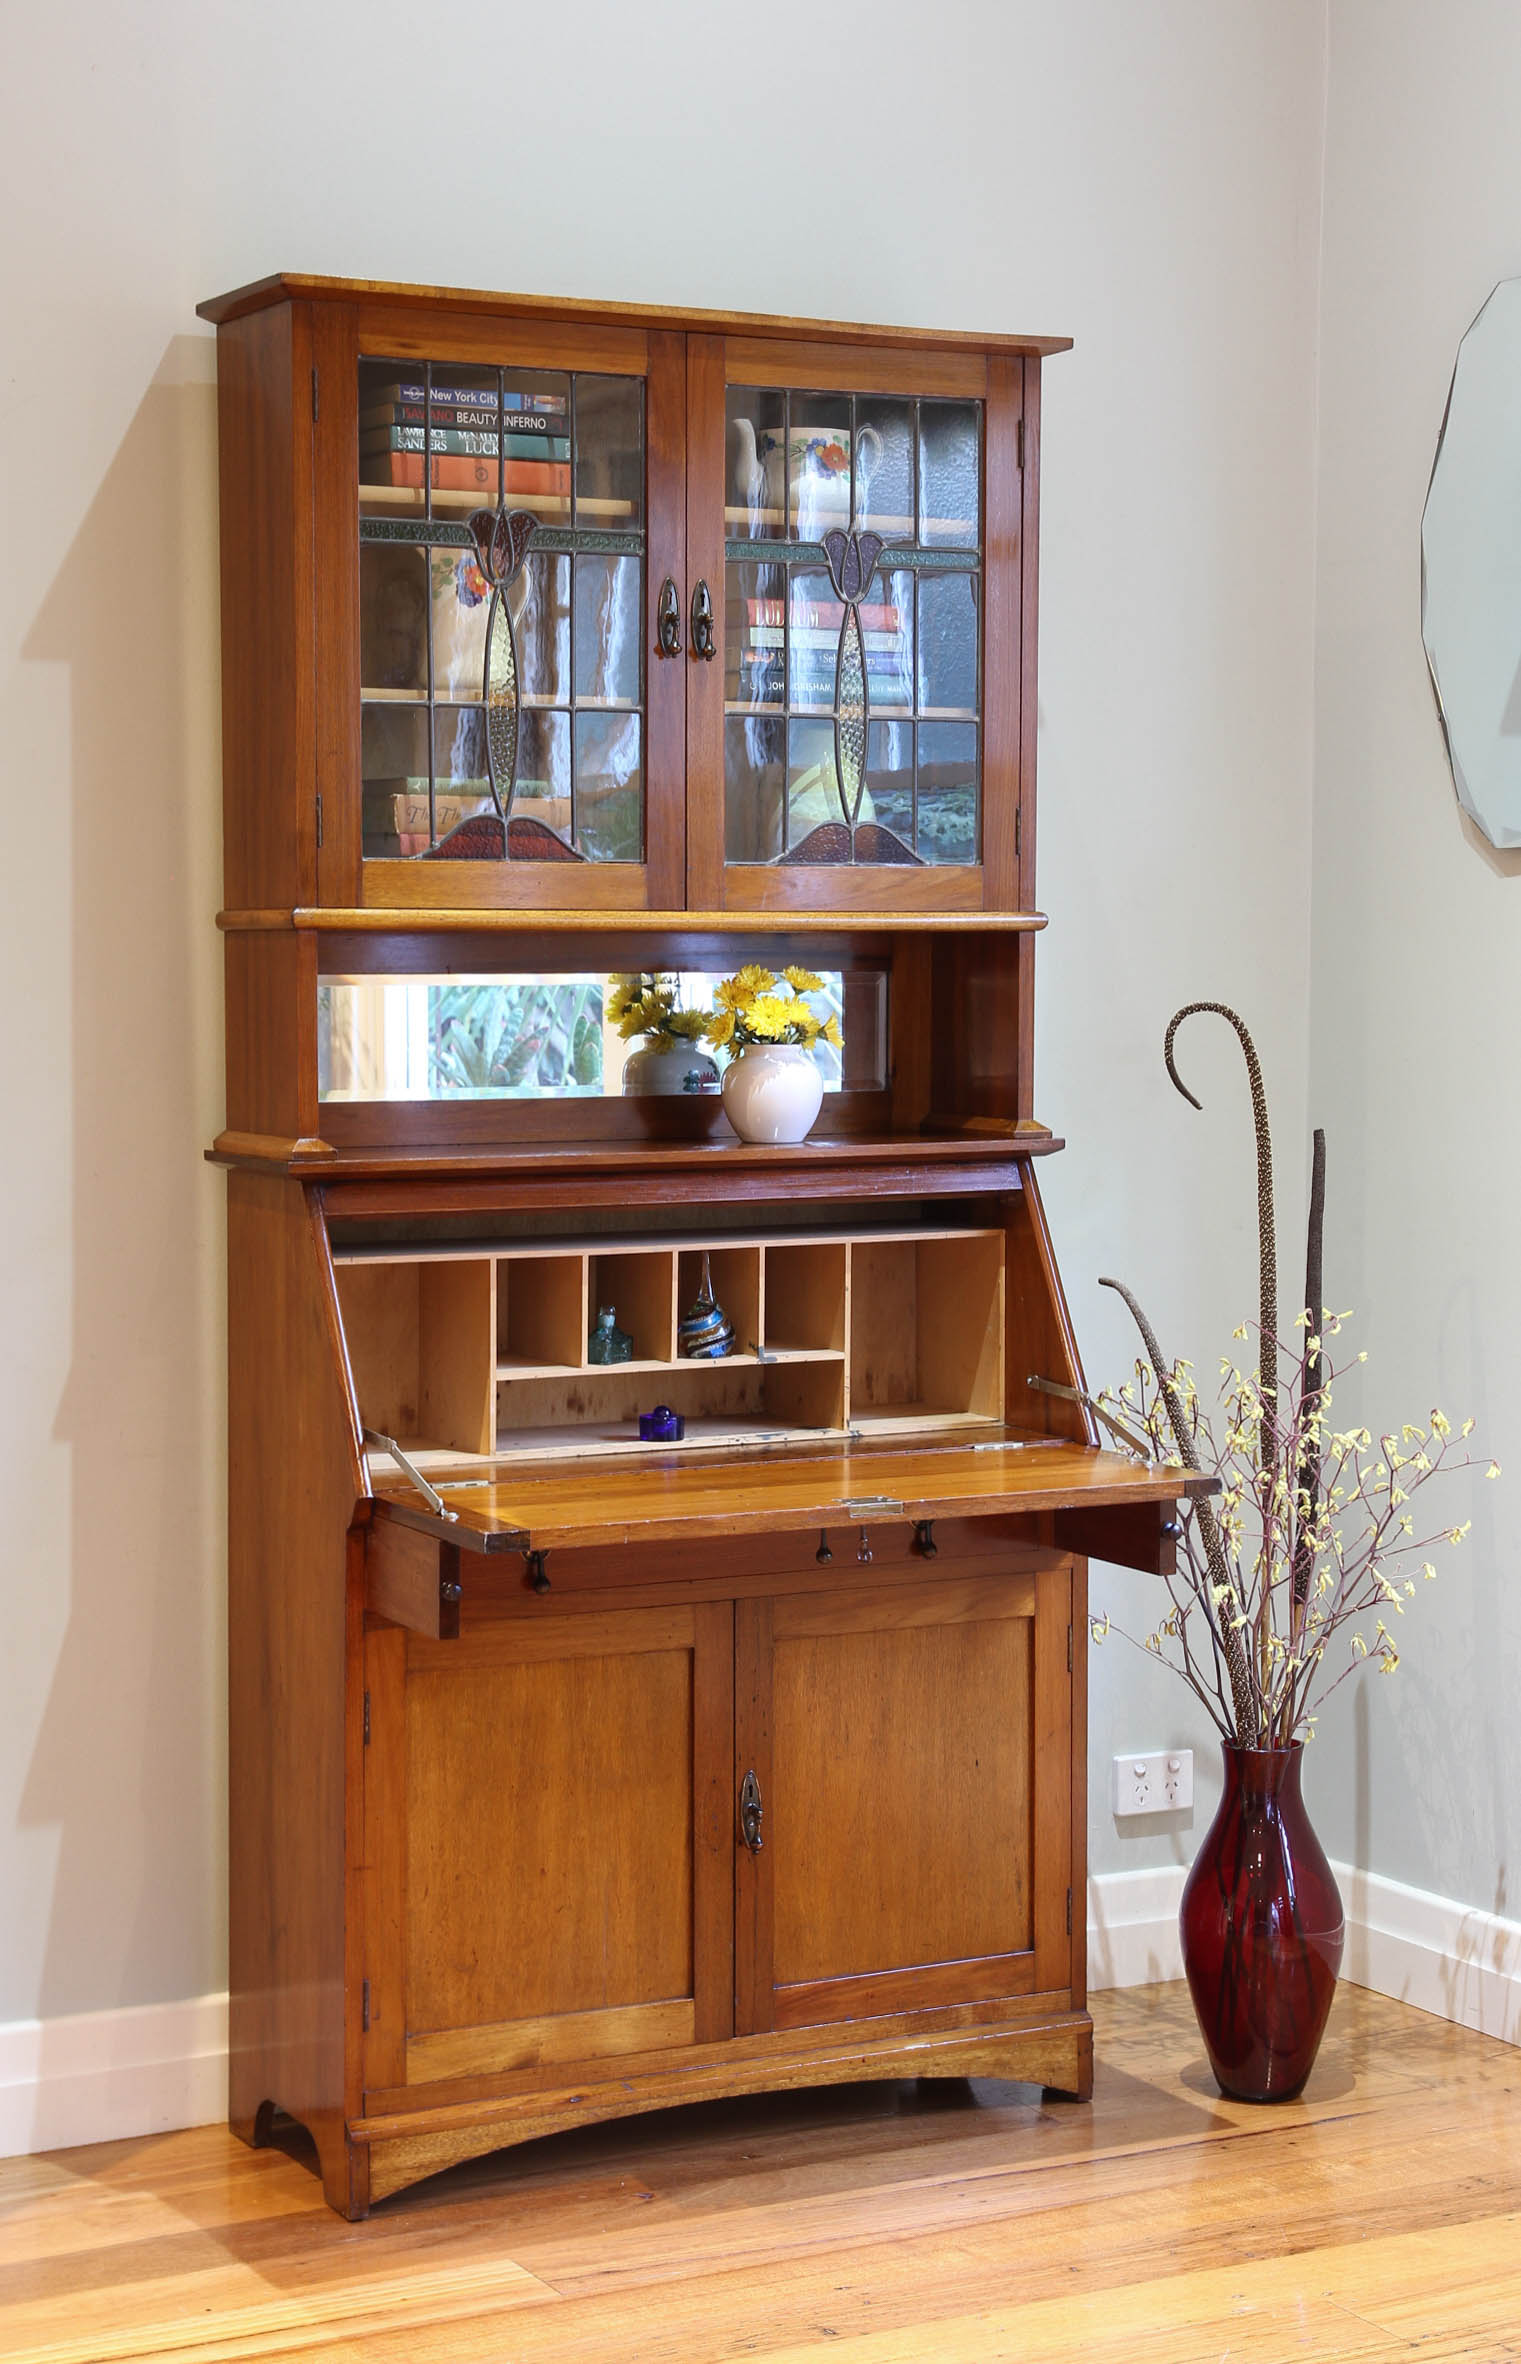 The Downing Street Executive Curio Desk: Antique Vintage Leadlight Glass Display